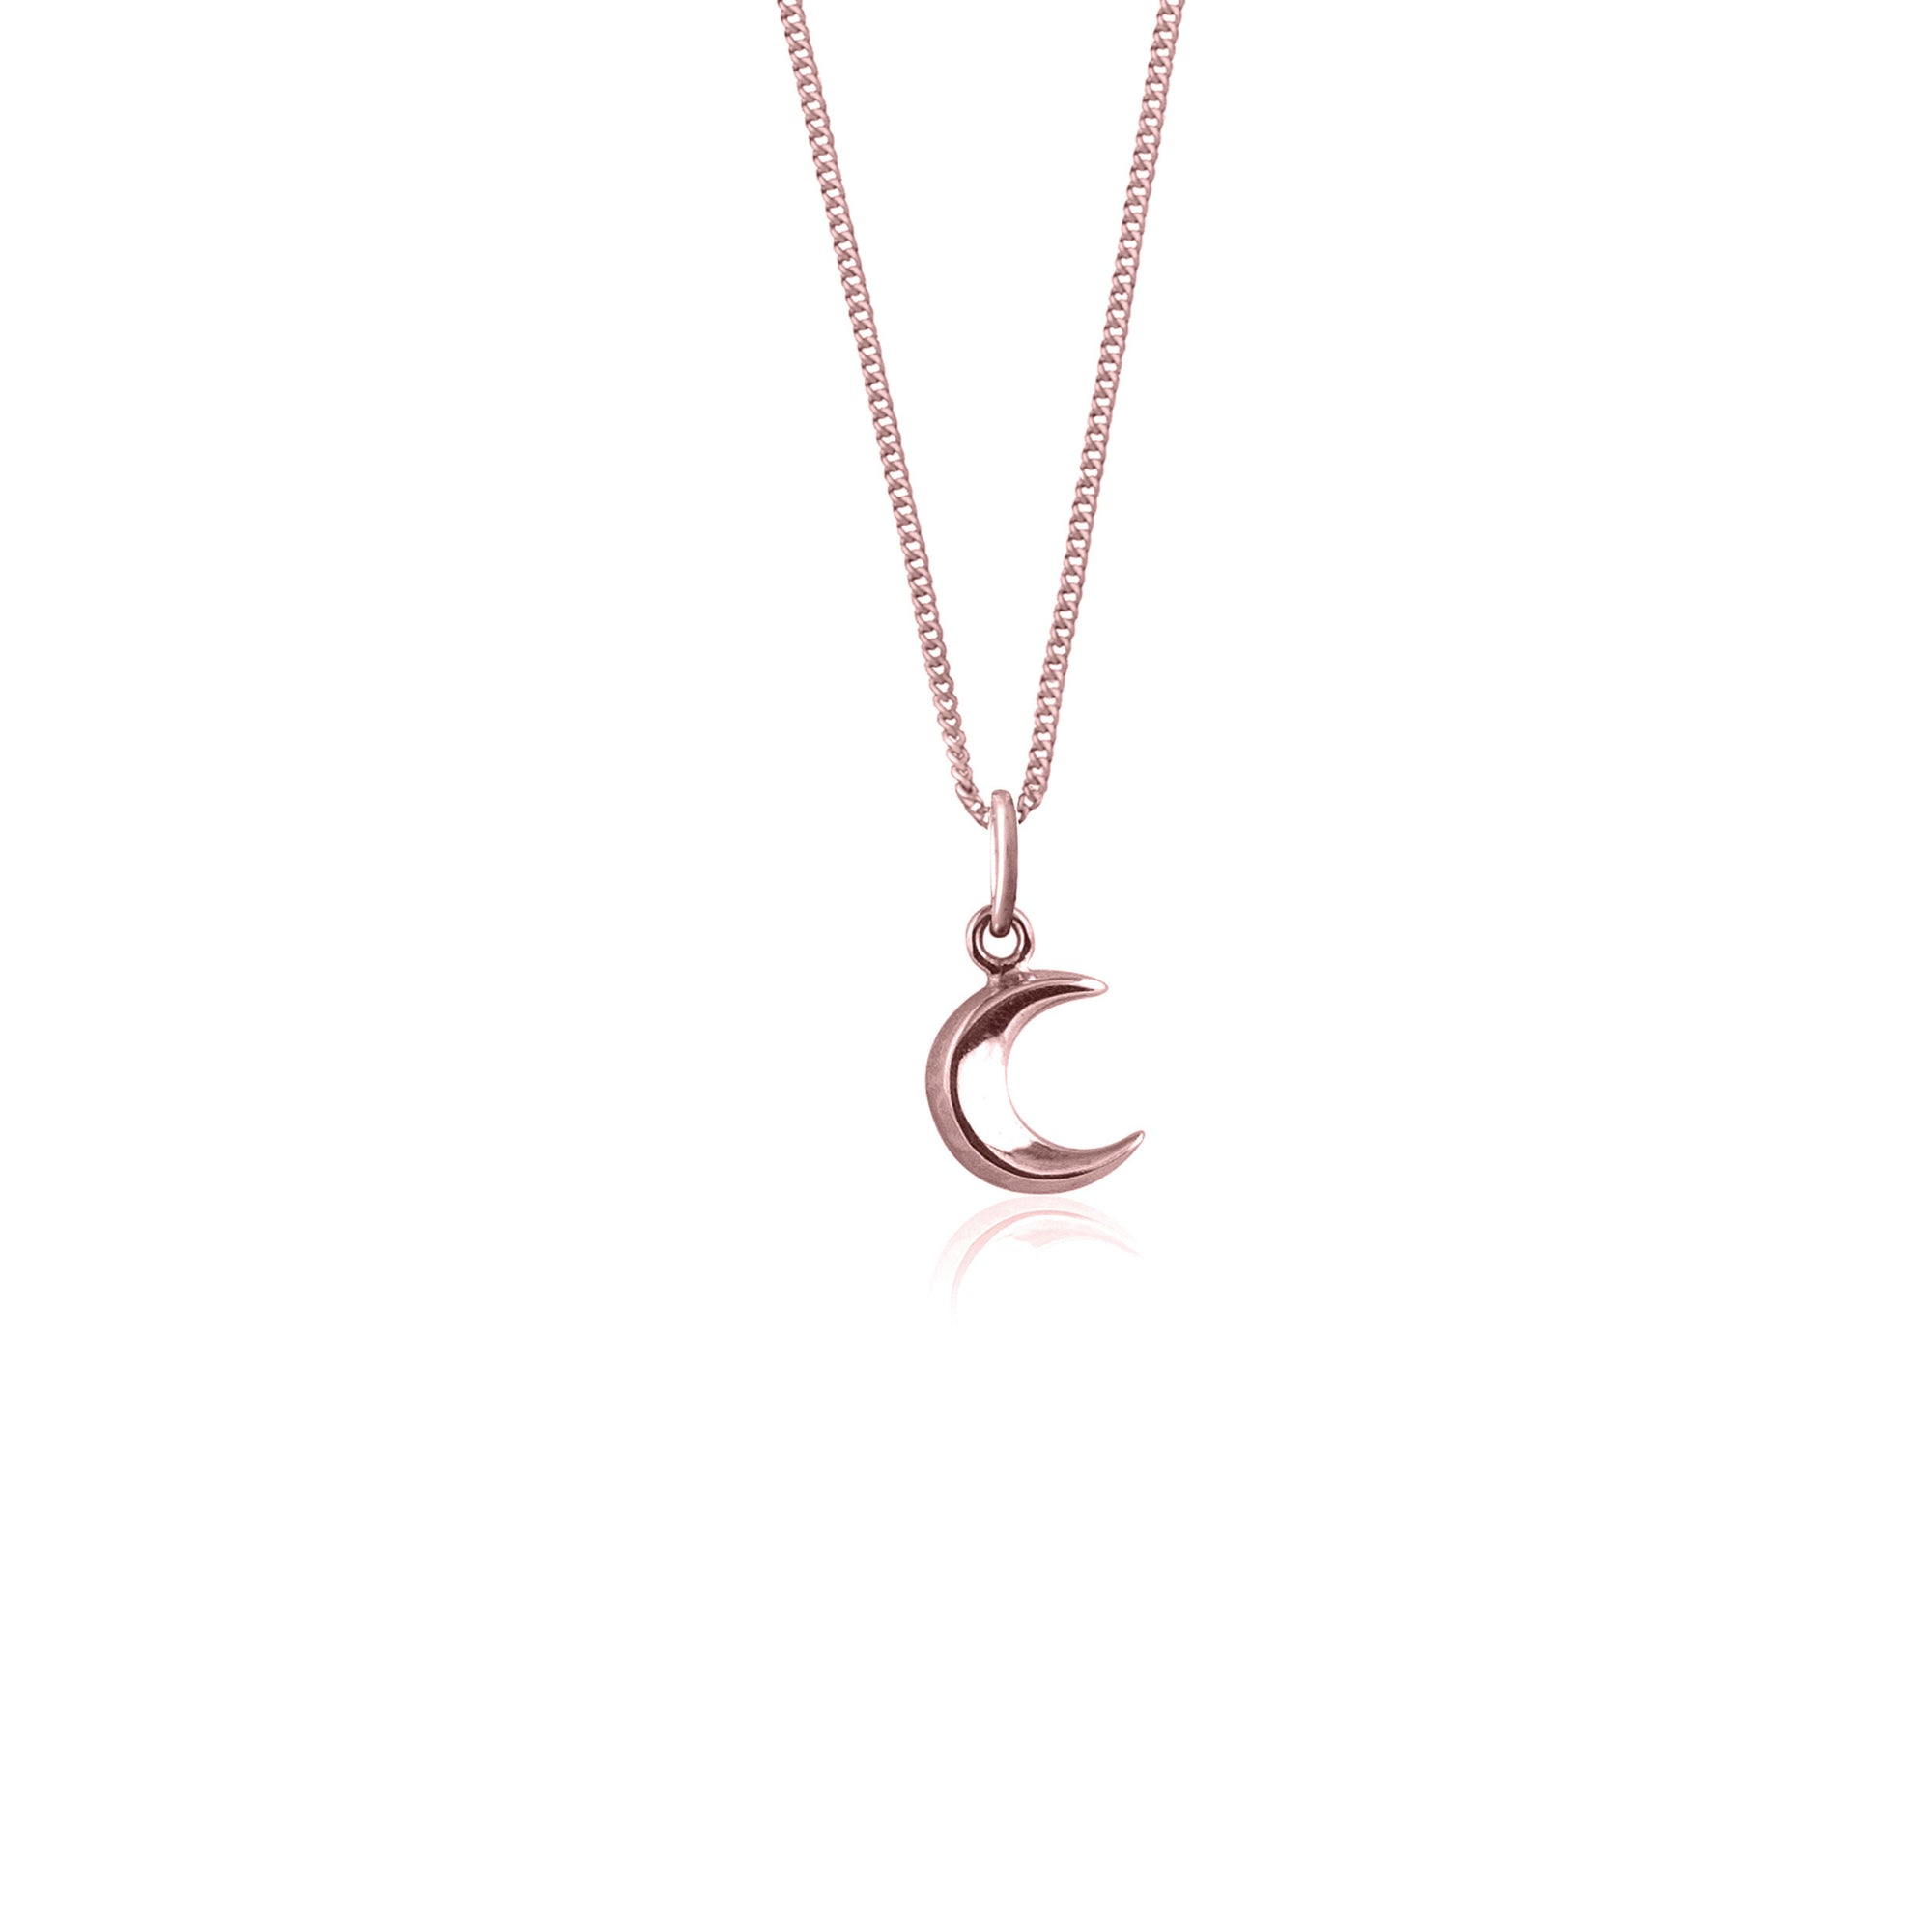 To The Moon and Back - Moon Charm Necklace